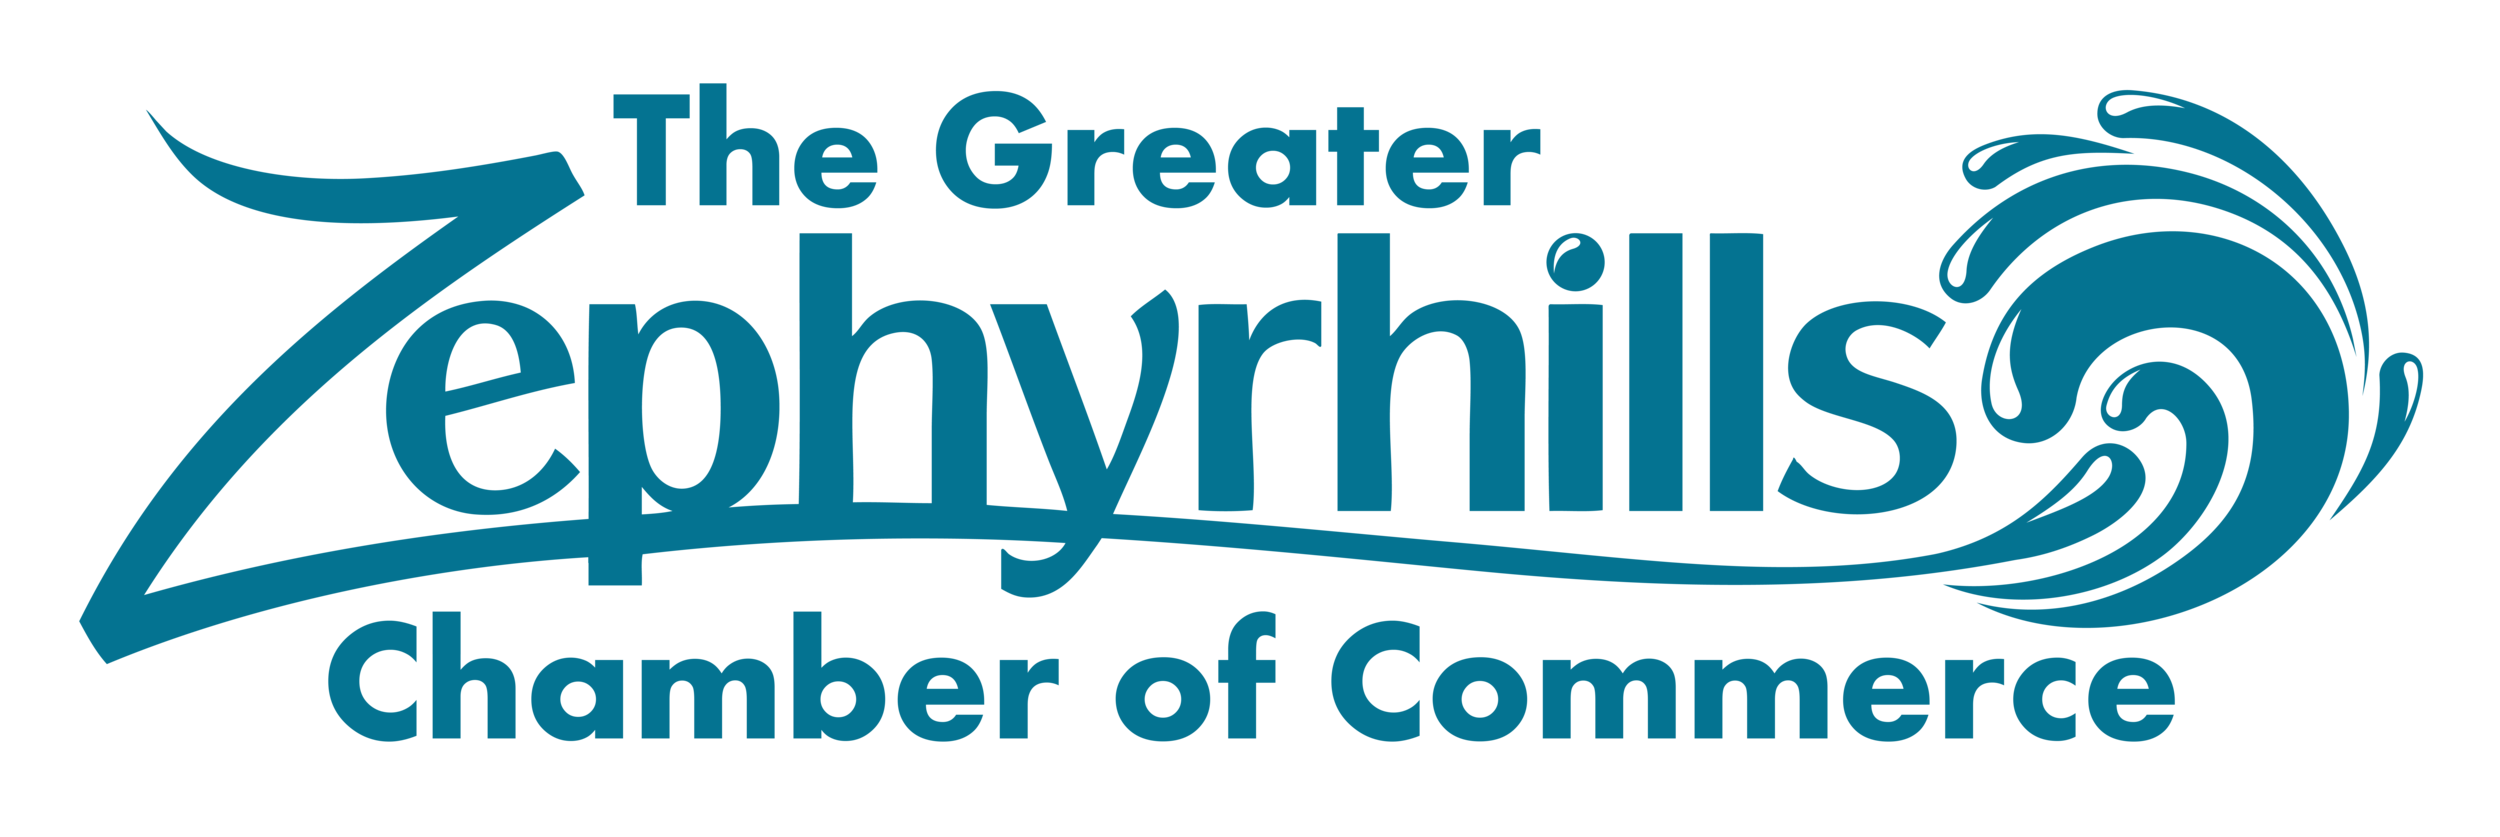 Zephyrhills Chamber of Commerce Logo 2017.png